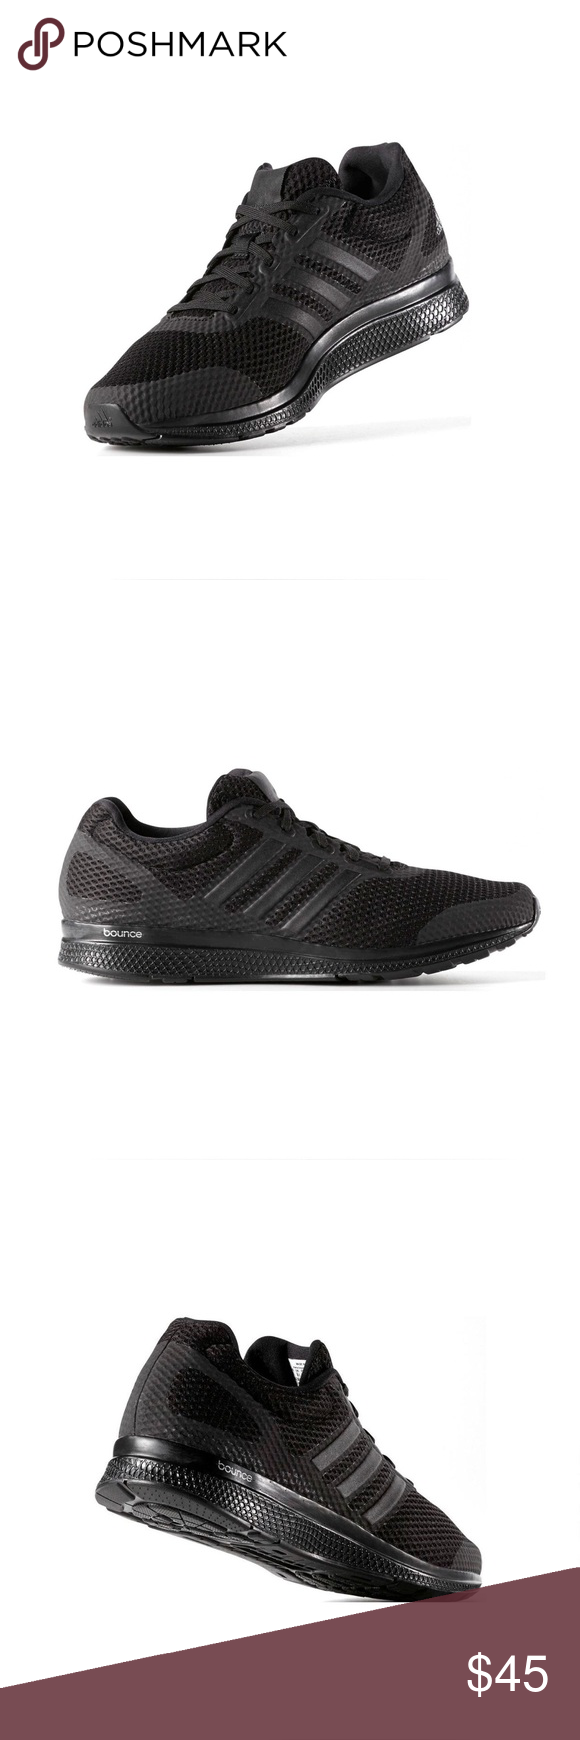 Adidas B42431 Mana Bounce Core Black Running Shoes Sleek shoes that combine  lightweight comfort and durability 4c8ccc8ab